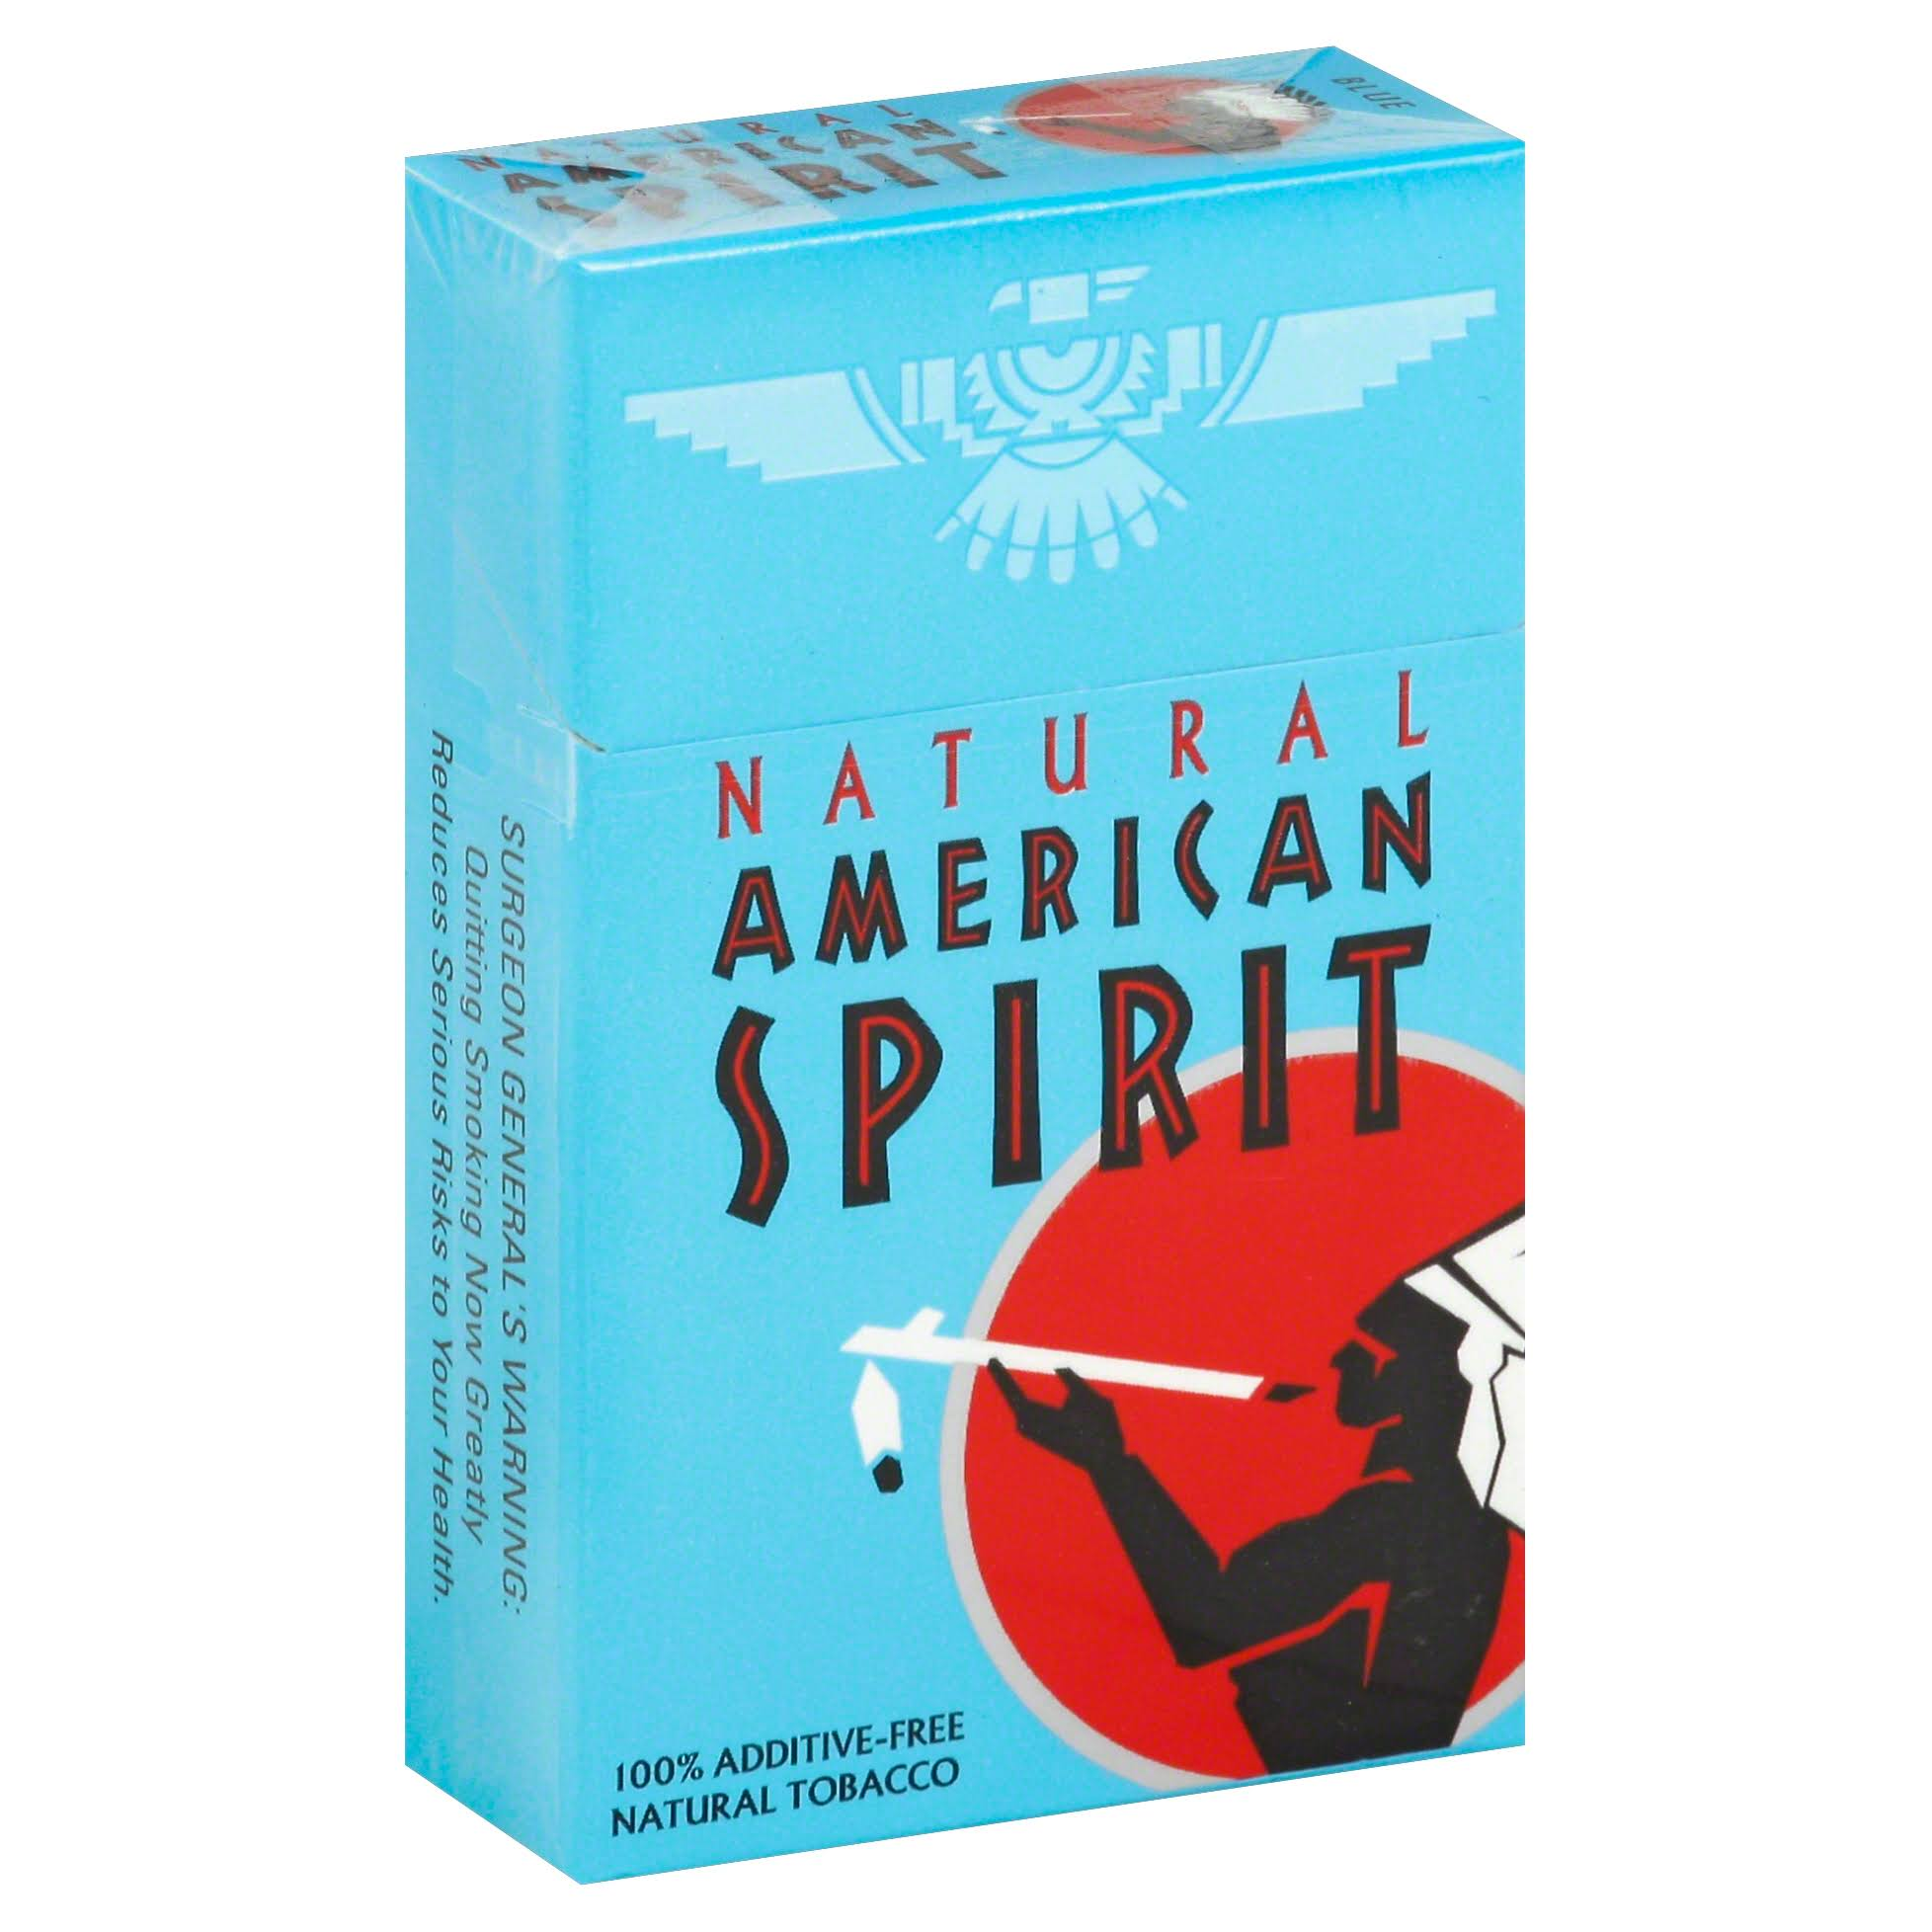 Natural American Spirit Cigarettes, Blue - 20 cigarettes